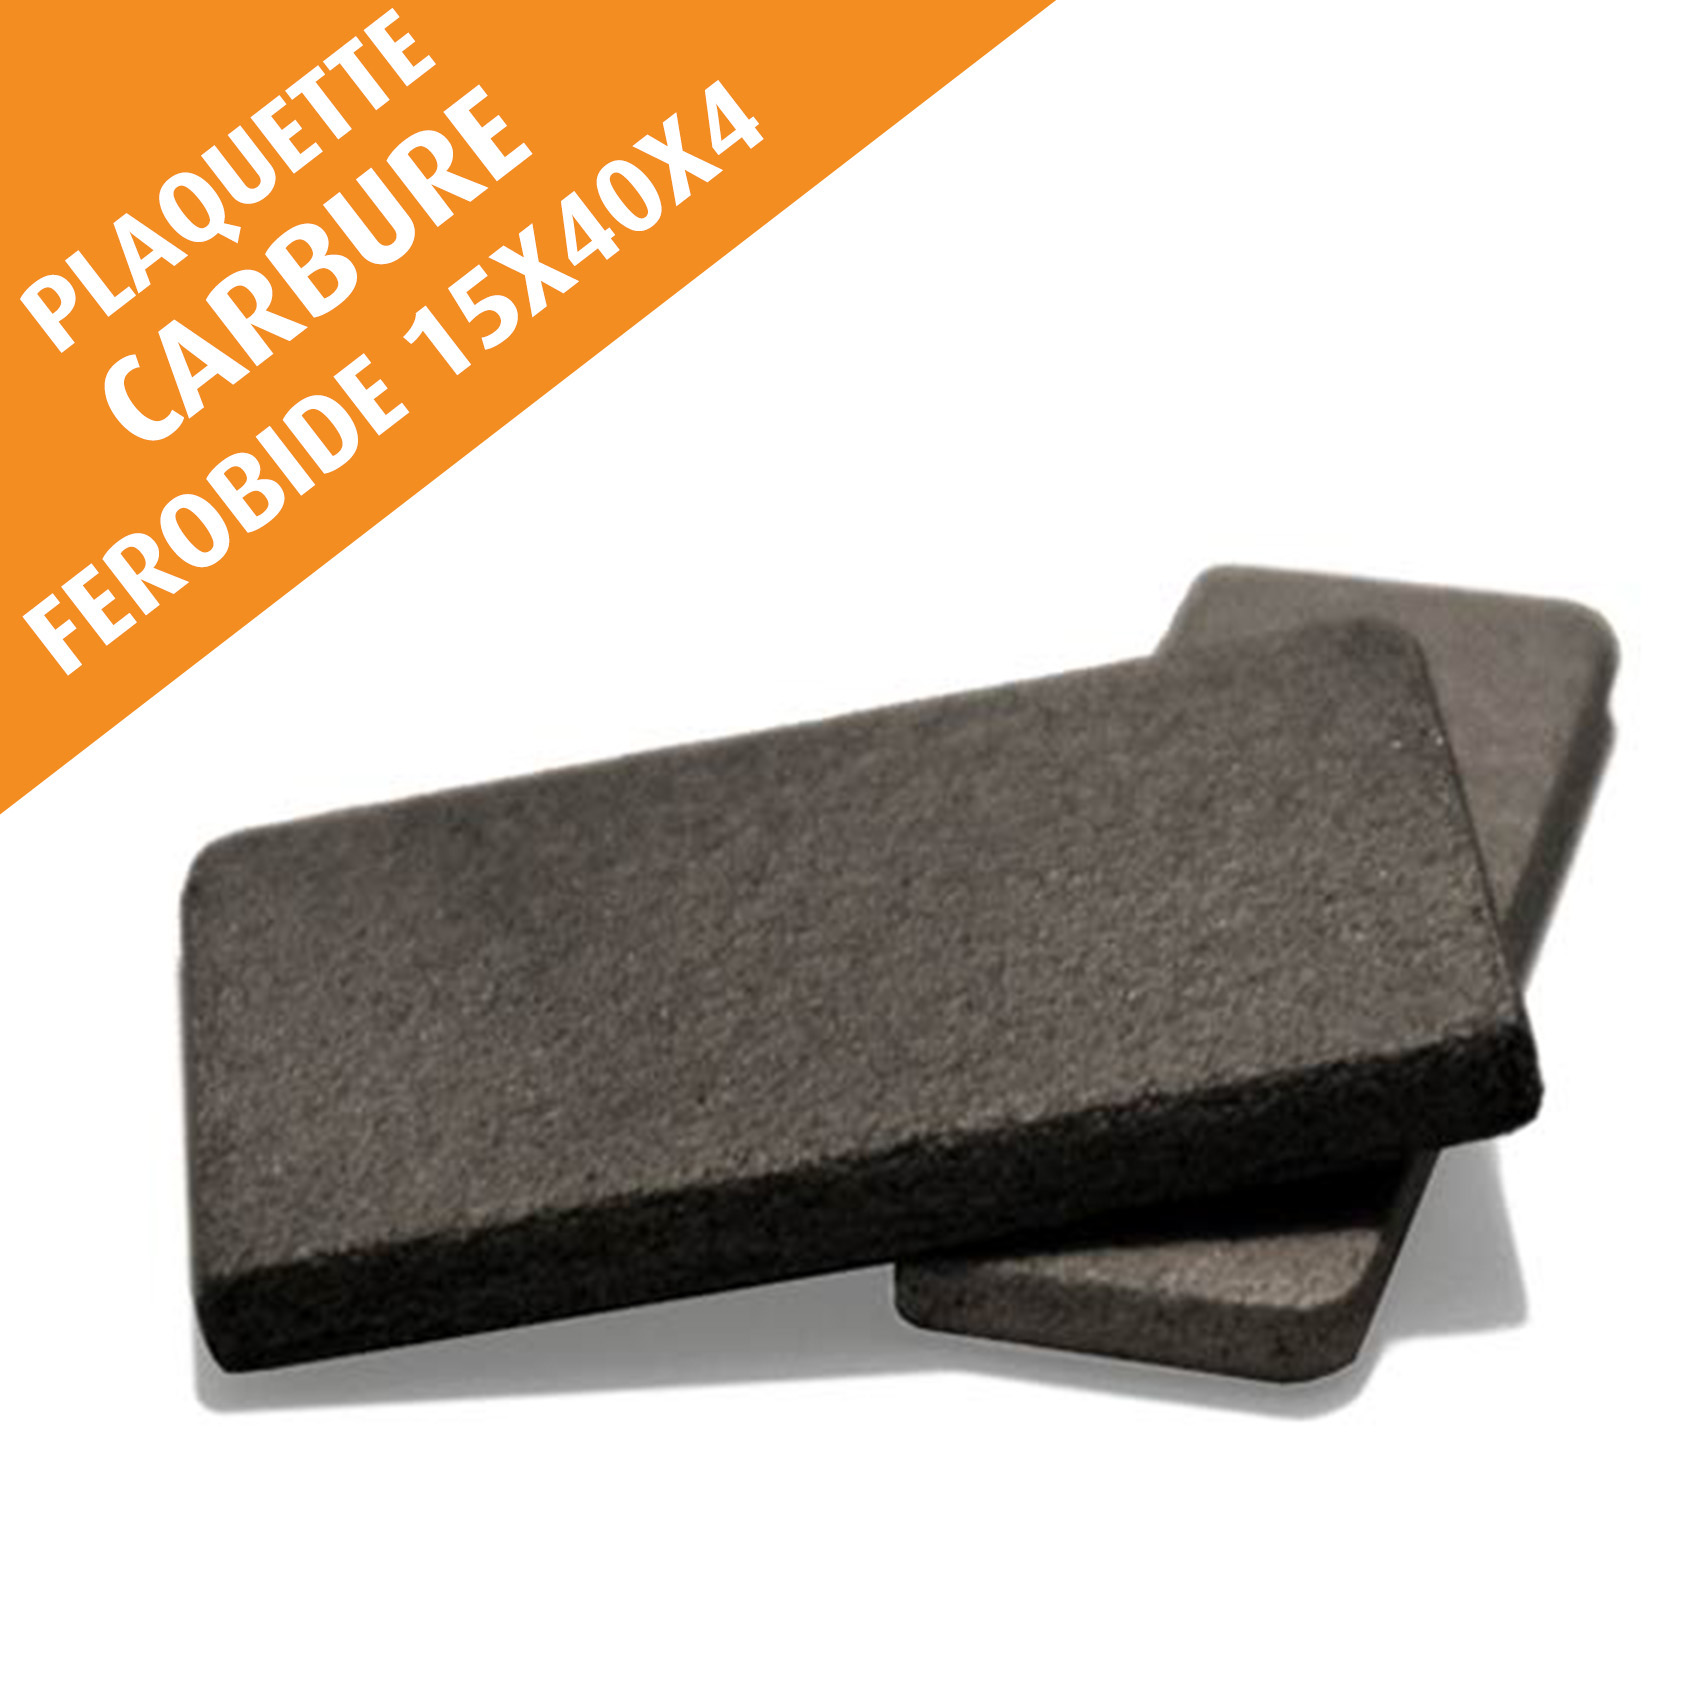 Lot de 10 plaquettes carbure FEROBIDE à souder, 15x40x4 mm